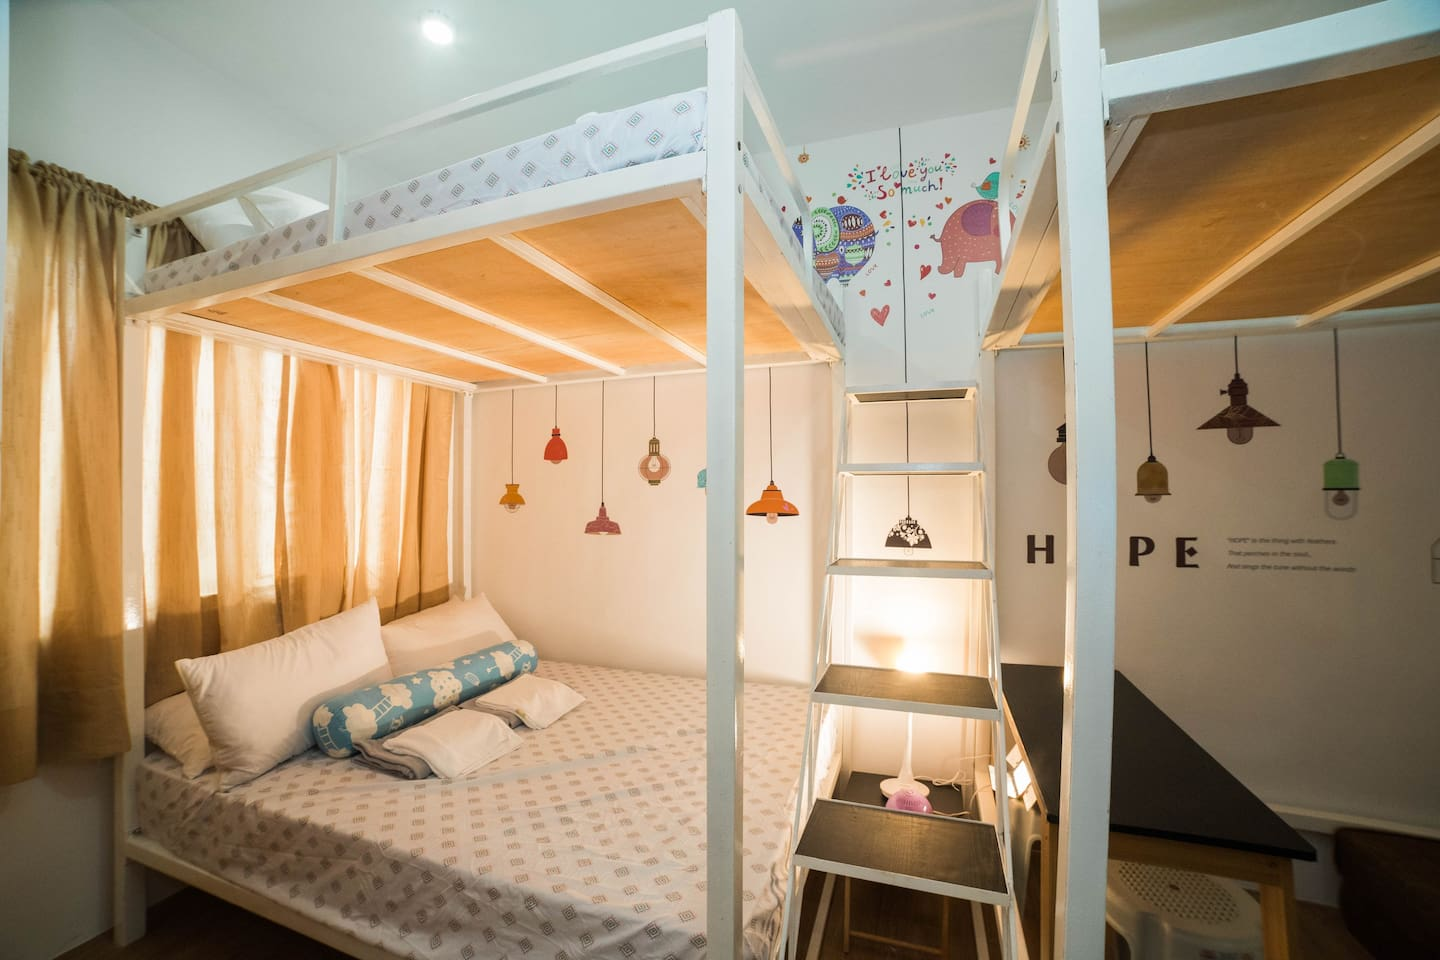 2 loft type bunk beds to make the room look spacious. These beds each has double bed sized mattresses that can accommodate up to 6 guests. Below the other bunk is a mini-living area with a sofa bed that can accommodate 2 more guests.